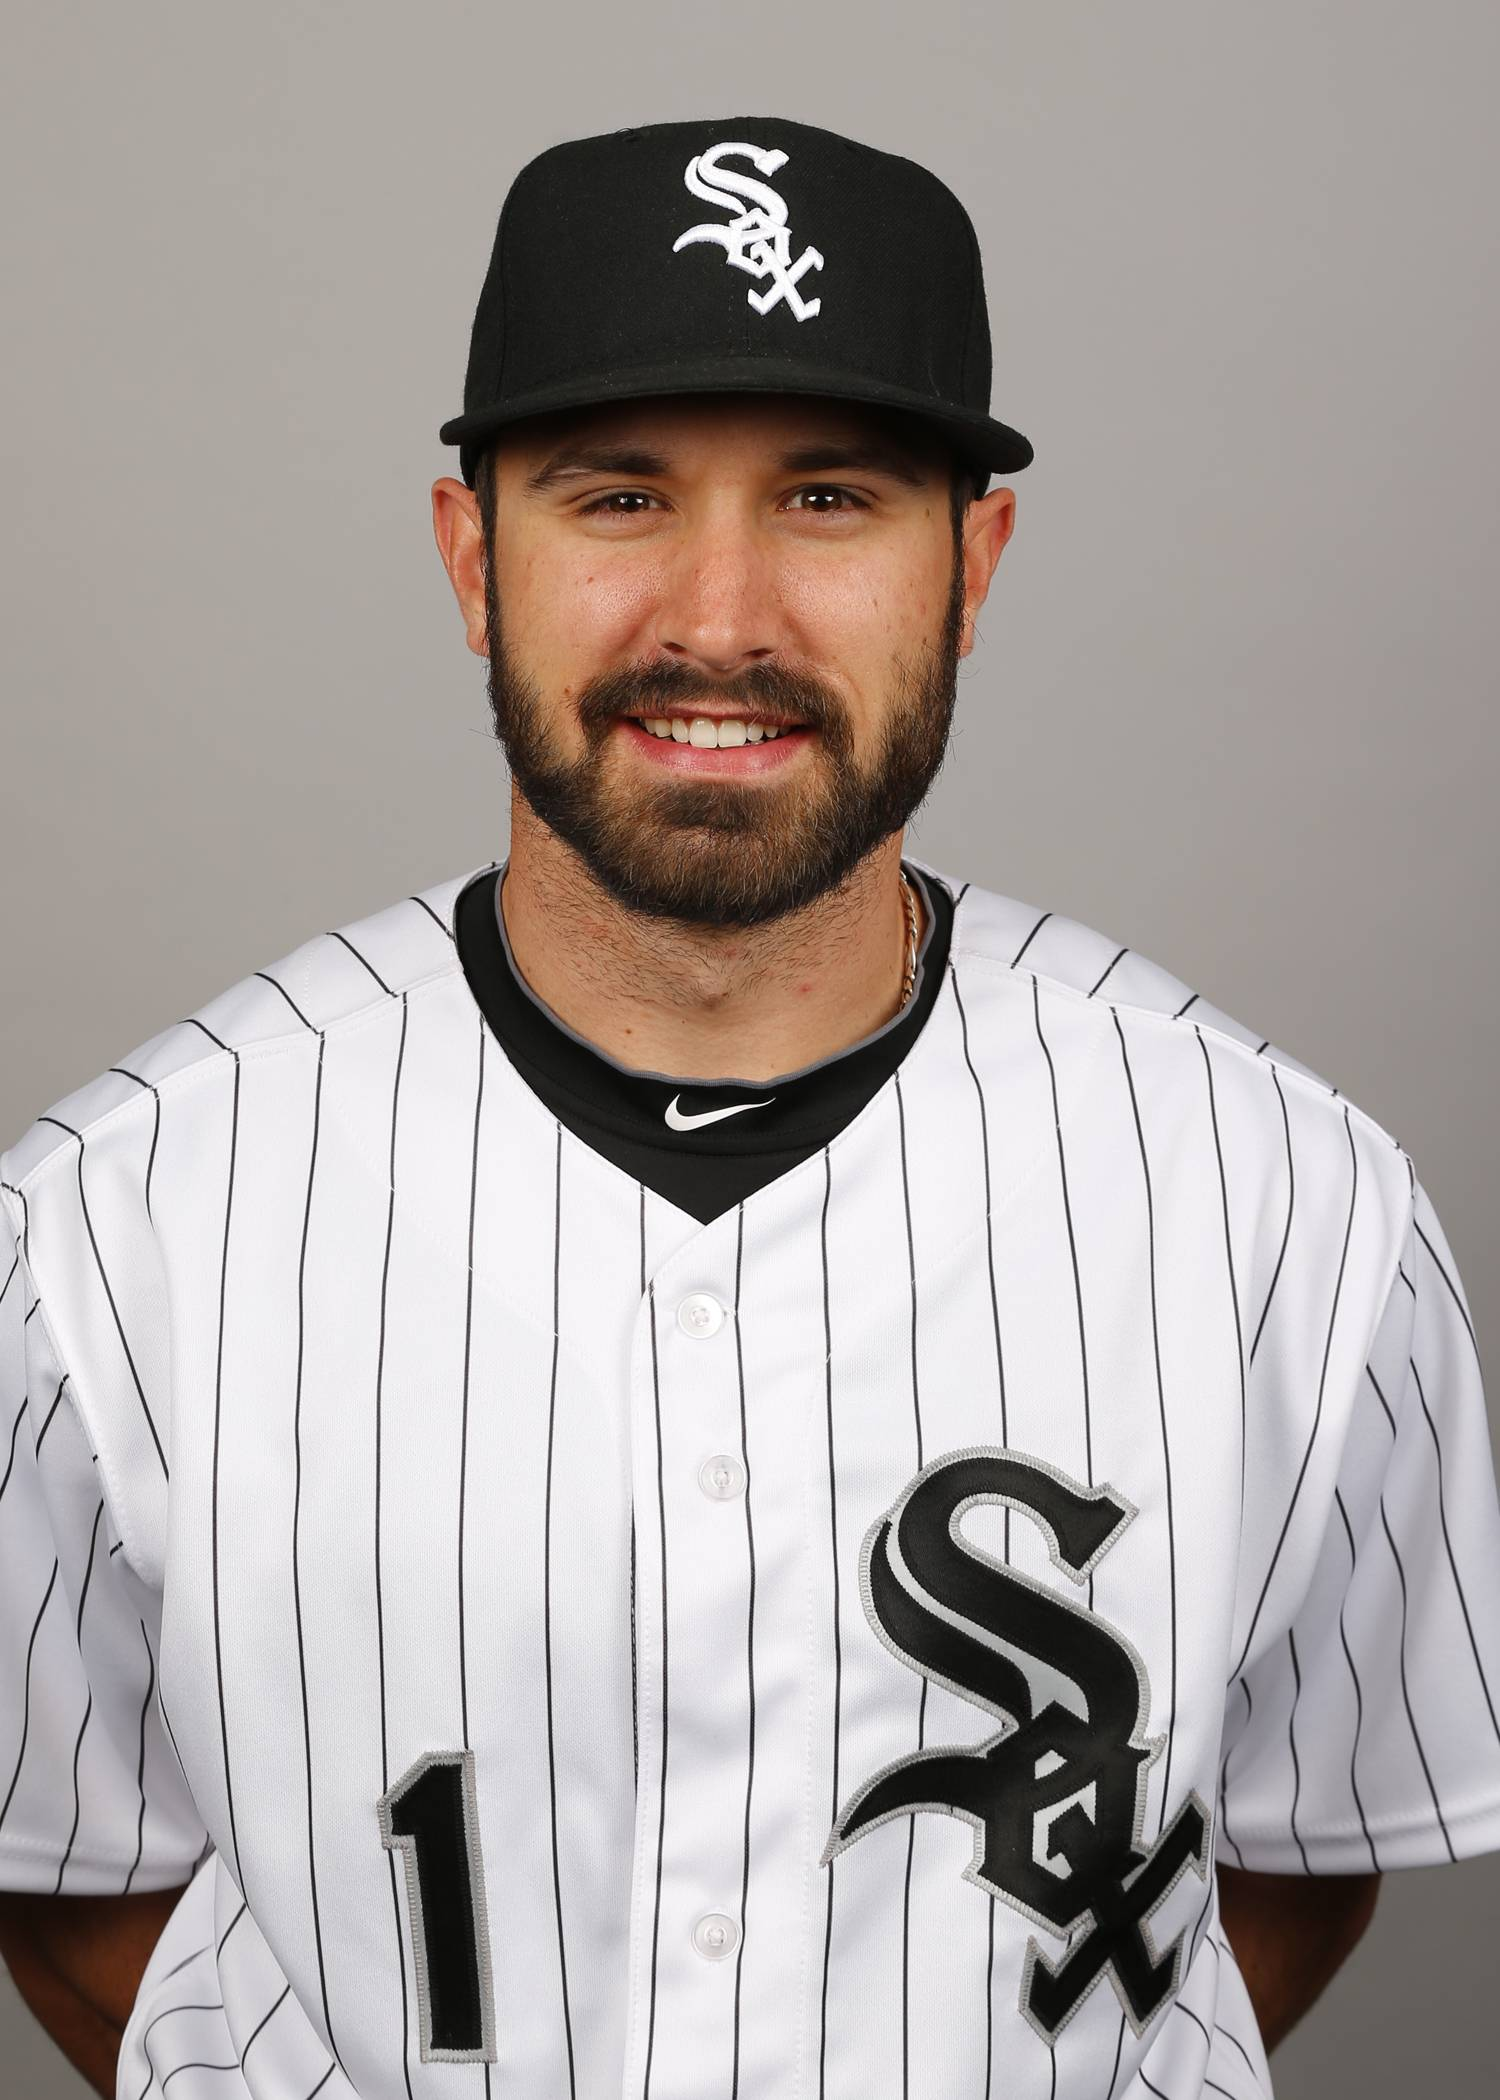 The White Sox have put outfielder Adam Eaton on the 15-day disabled list because of a strained right hamstring.